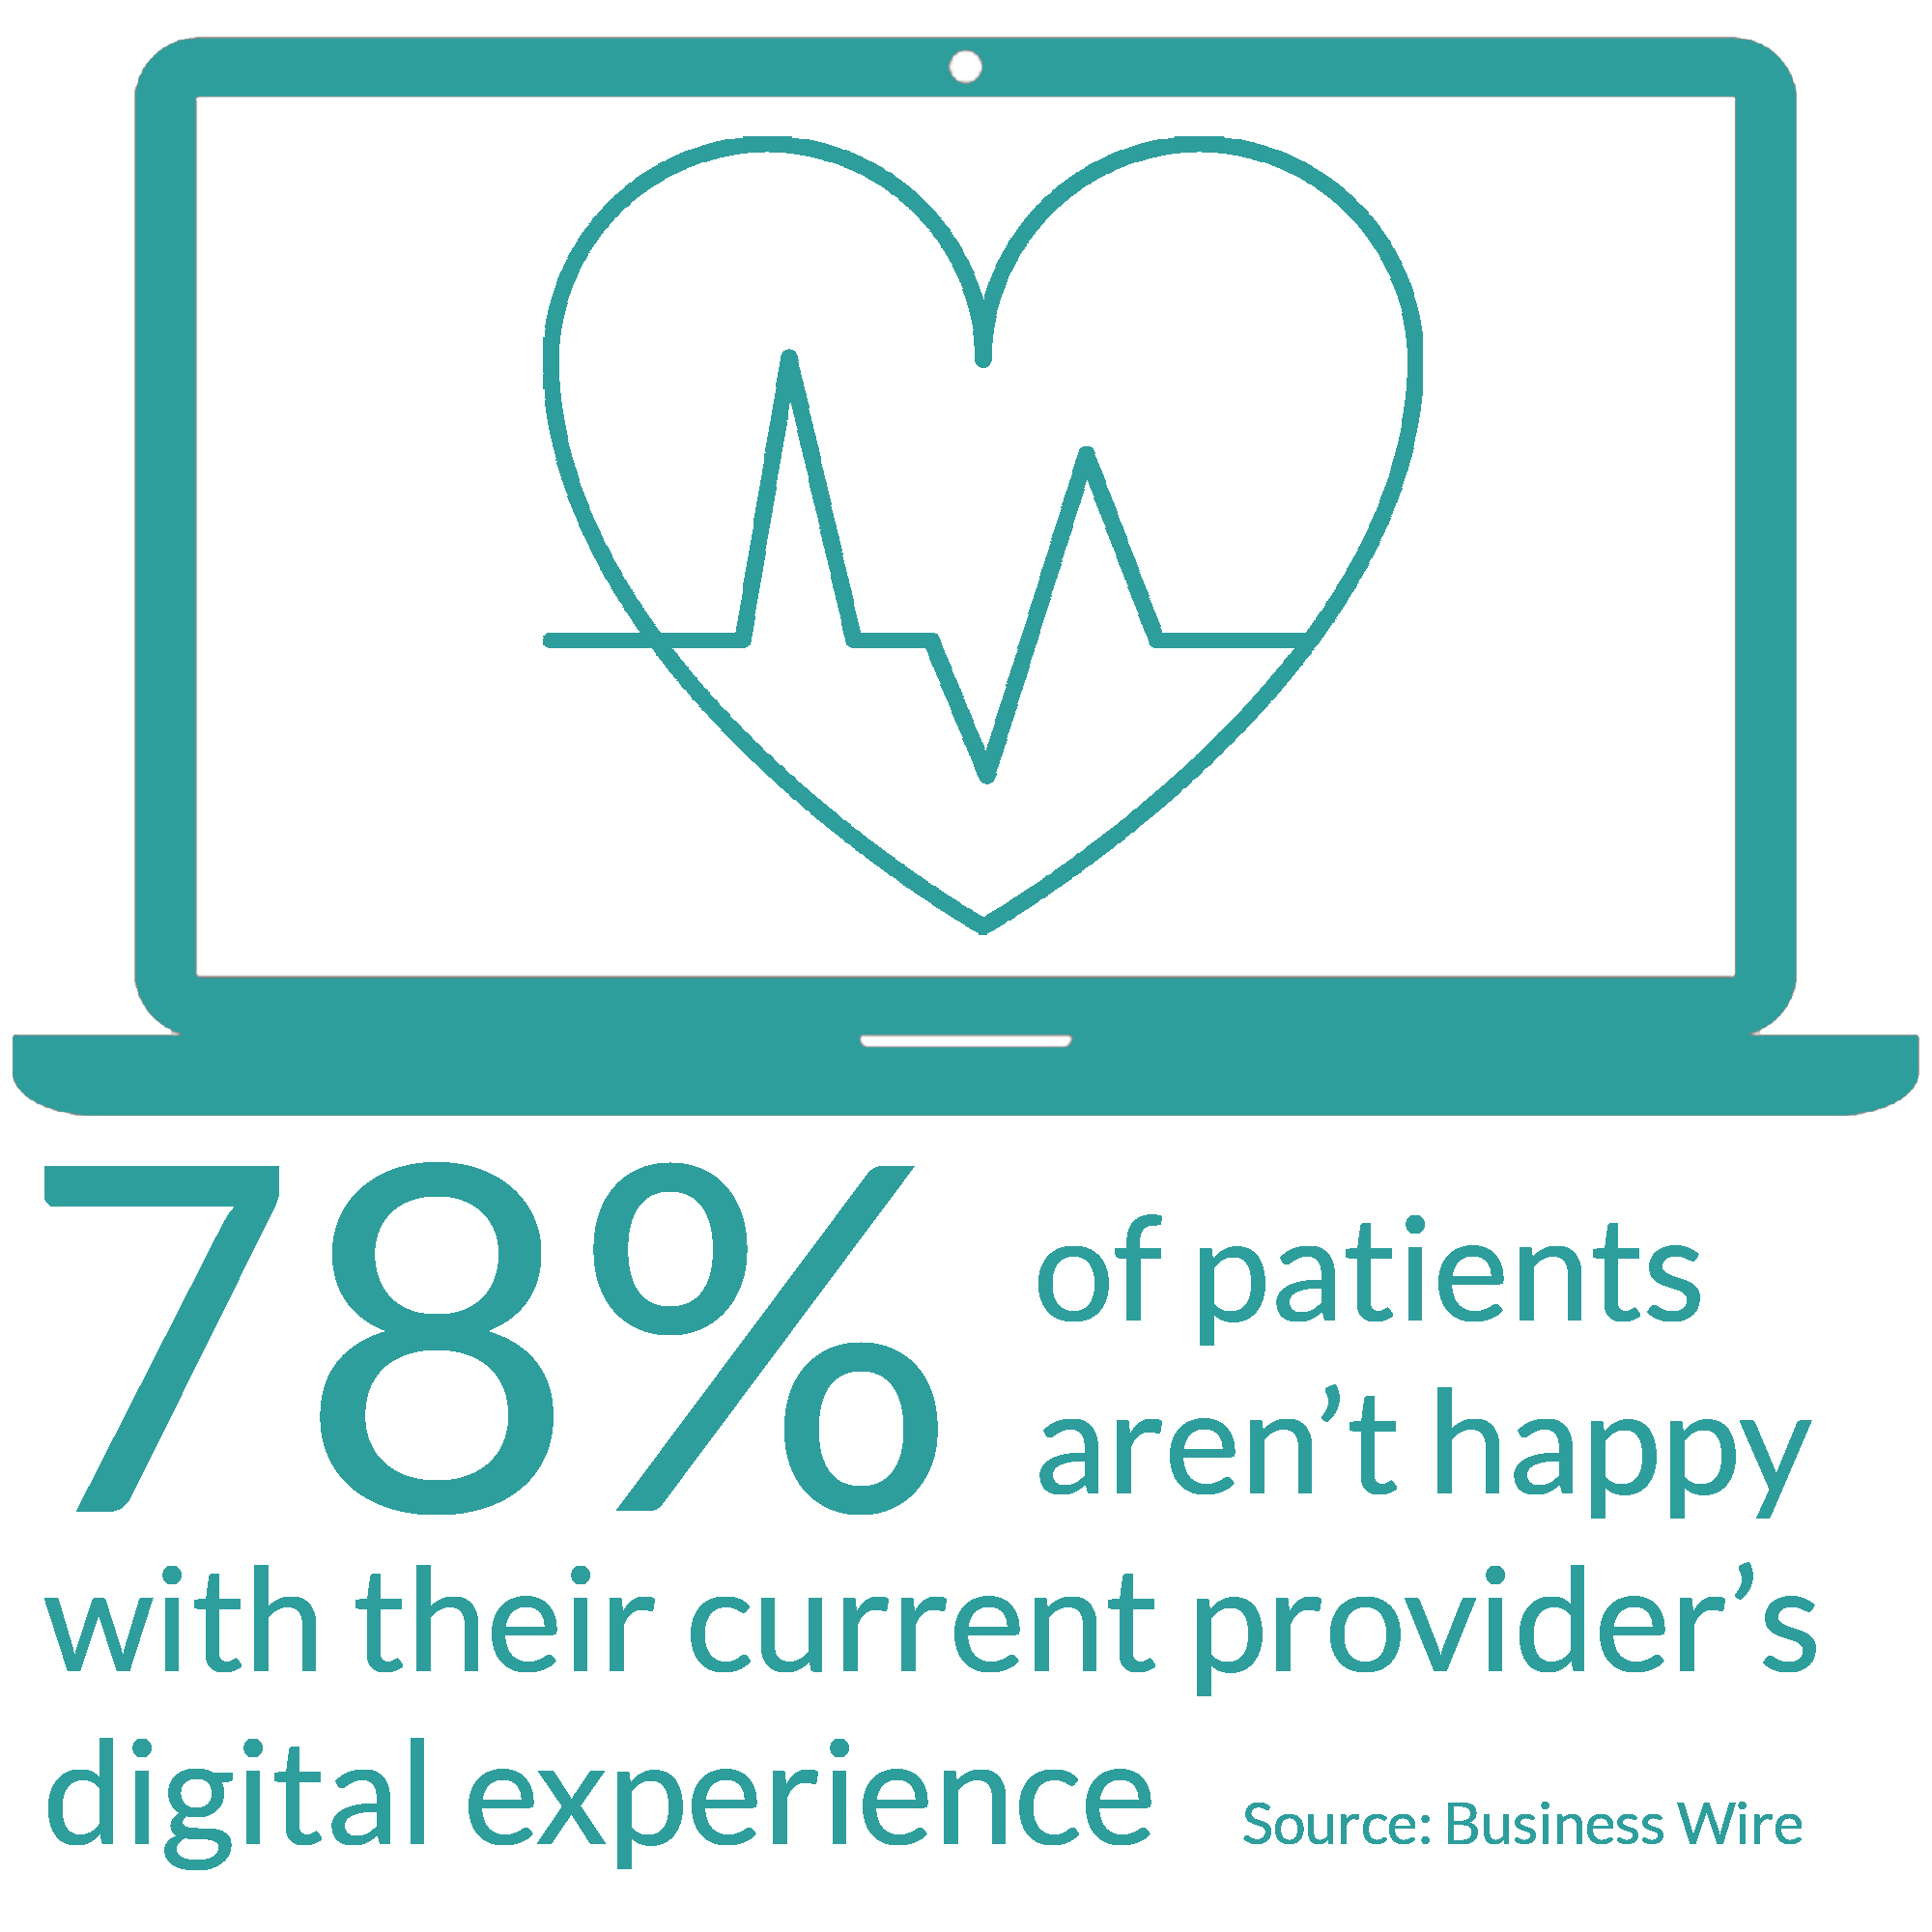 78% of patients aren't happy with their current provider's digital experience